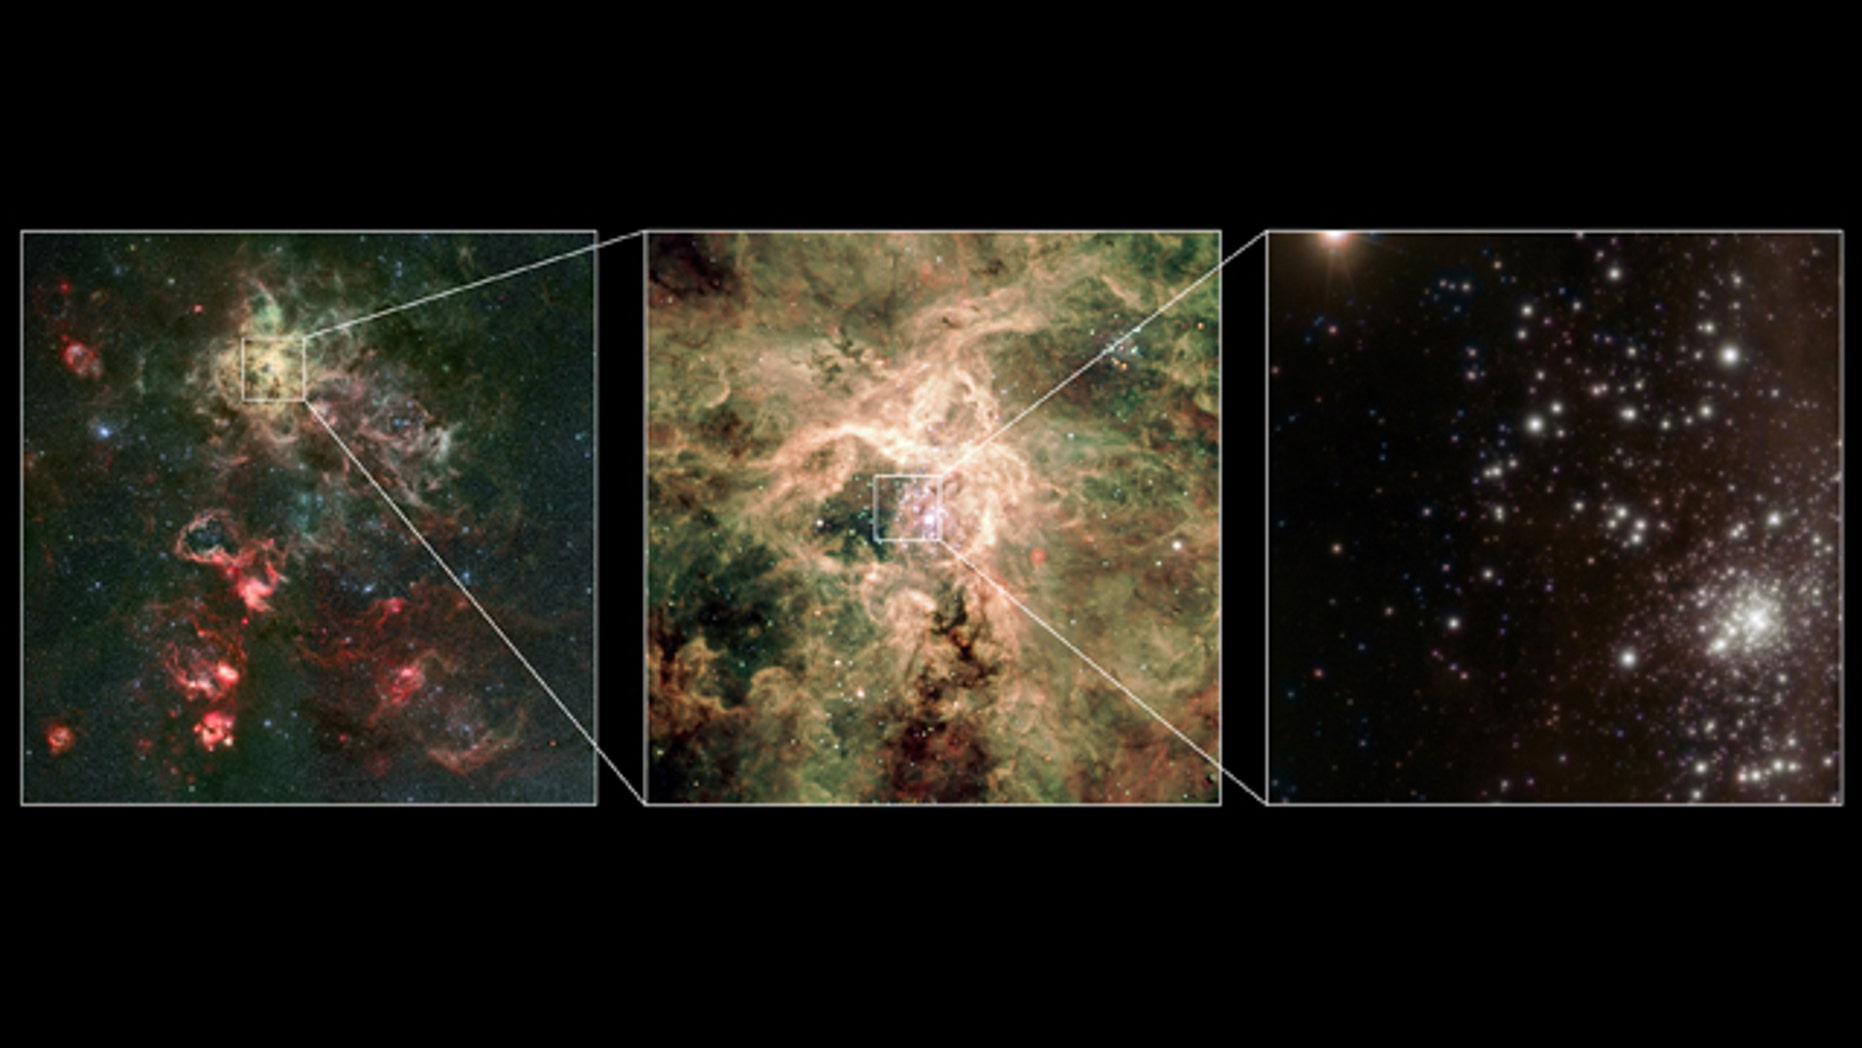 Scientists have indentified the star R136a1 -- thought to be the heaviest star ever discovered, hundreds of times more massive than the sun -- Wednesday after working out its weight for the first time. This montage shows a visible-light image of the Tarantula nebula (left) along with a zoomed-in visible-light image from the Very Large Telescope (middle). A new image of the R136 cluster, obtained with the Very Large Telescope is shown in the right-hand panel, with the cluster itself at the lower right.